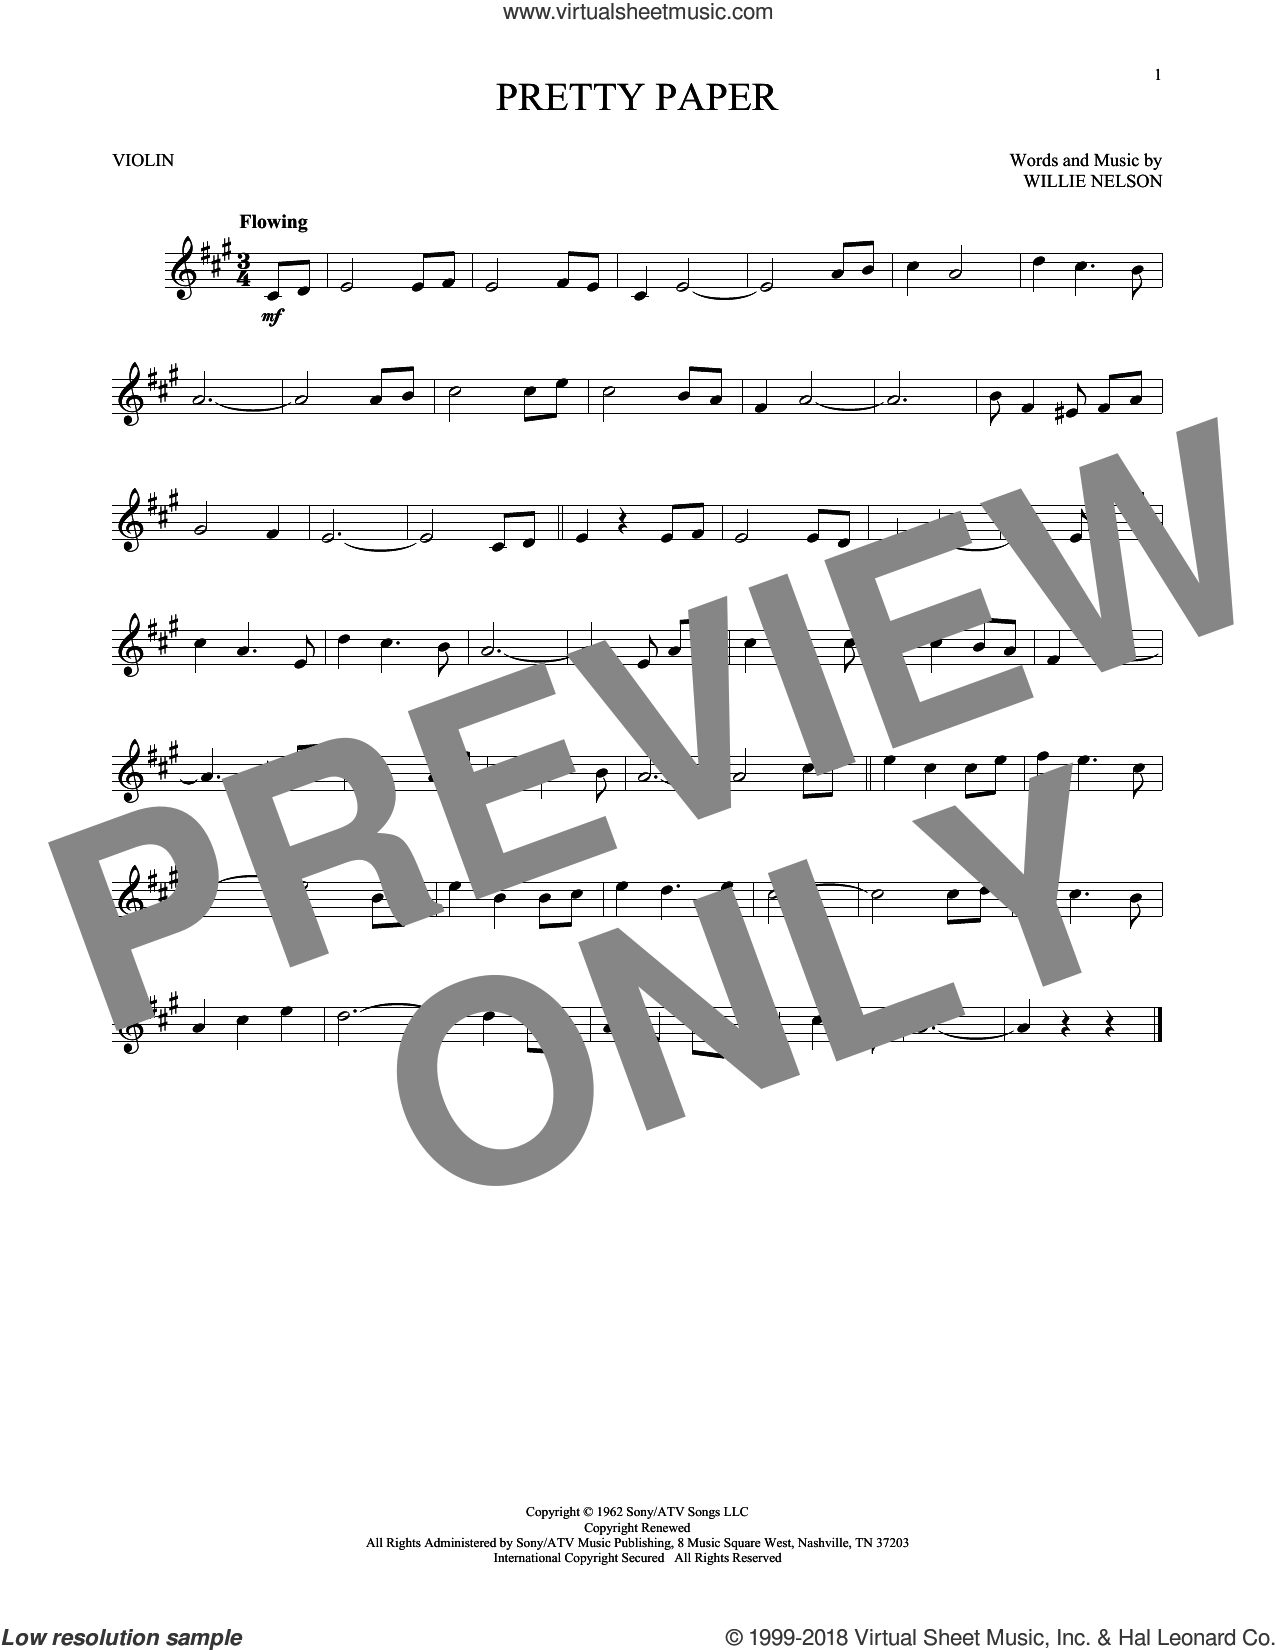 Pretty Paper sheet music for violin solo by Willie Nelson, intermediate skill level